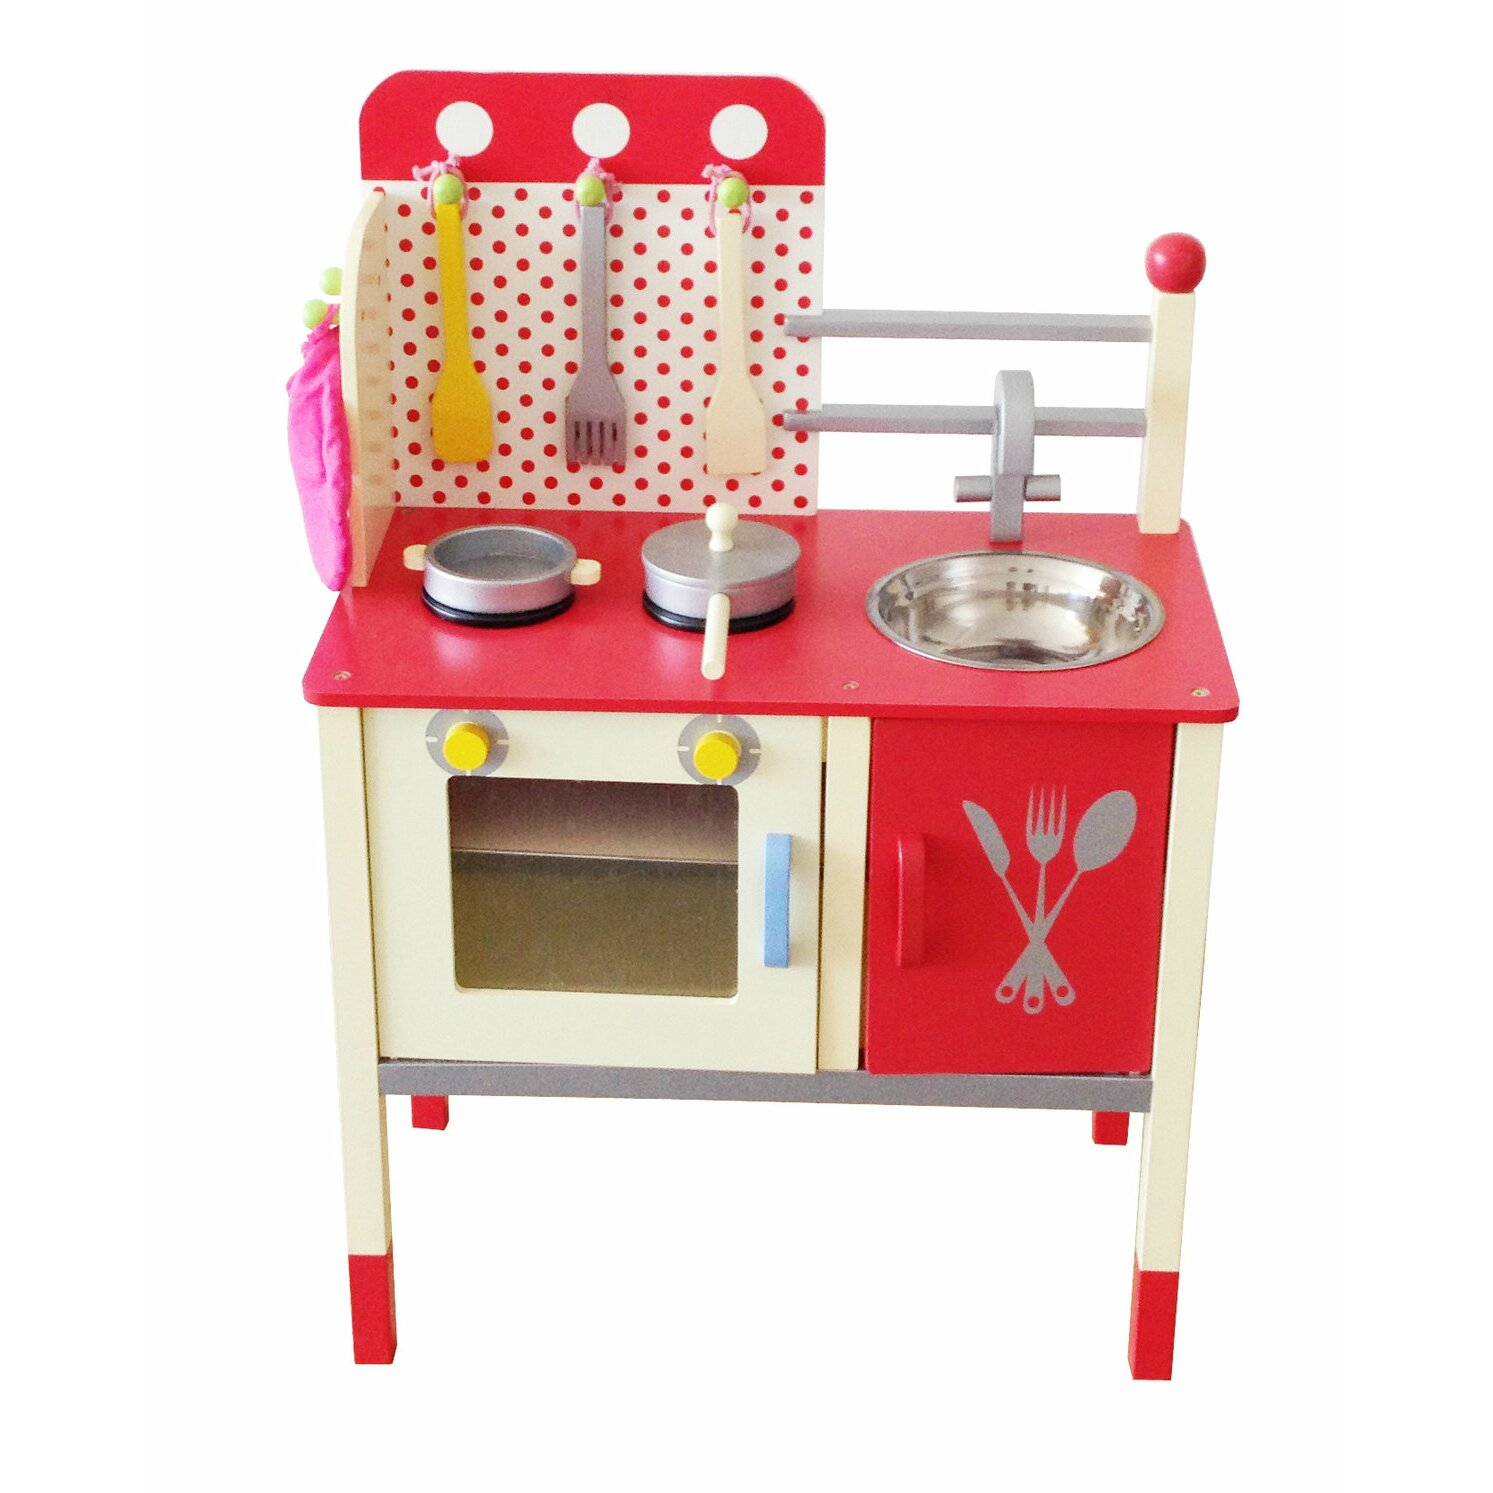 Berry toys cute and fun wooden play kitchen reviews for Kitchen set for babies